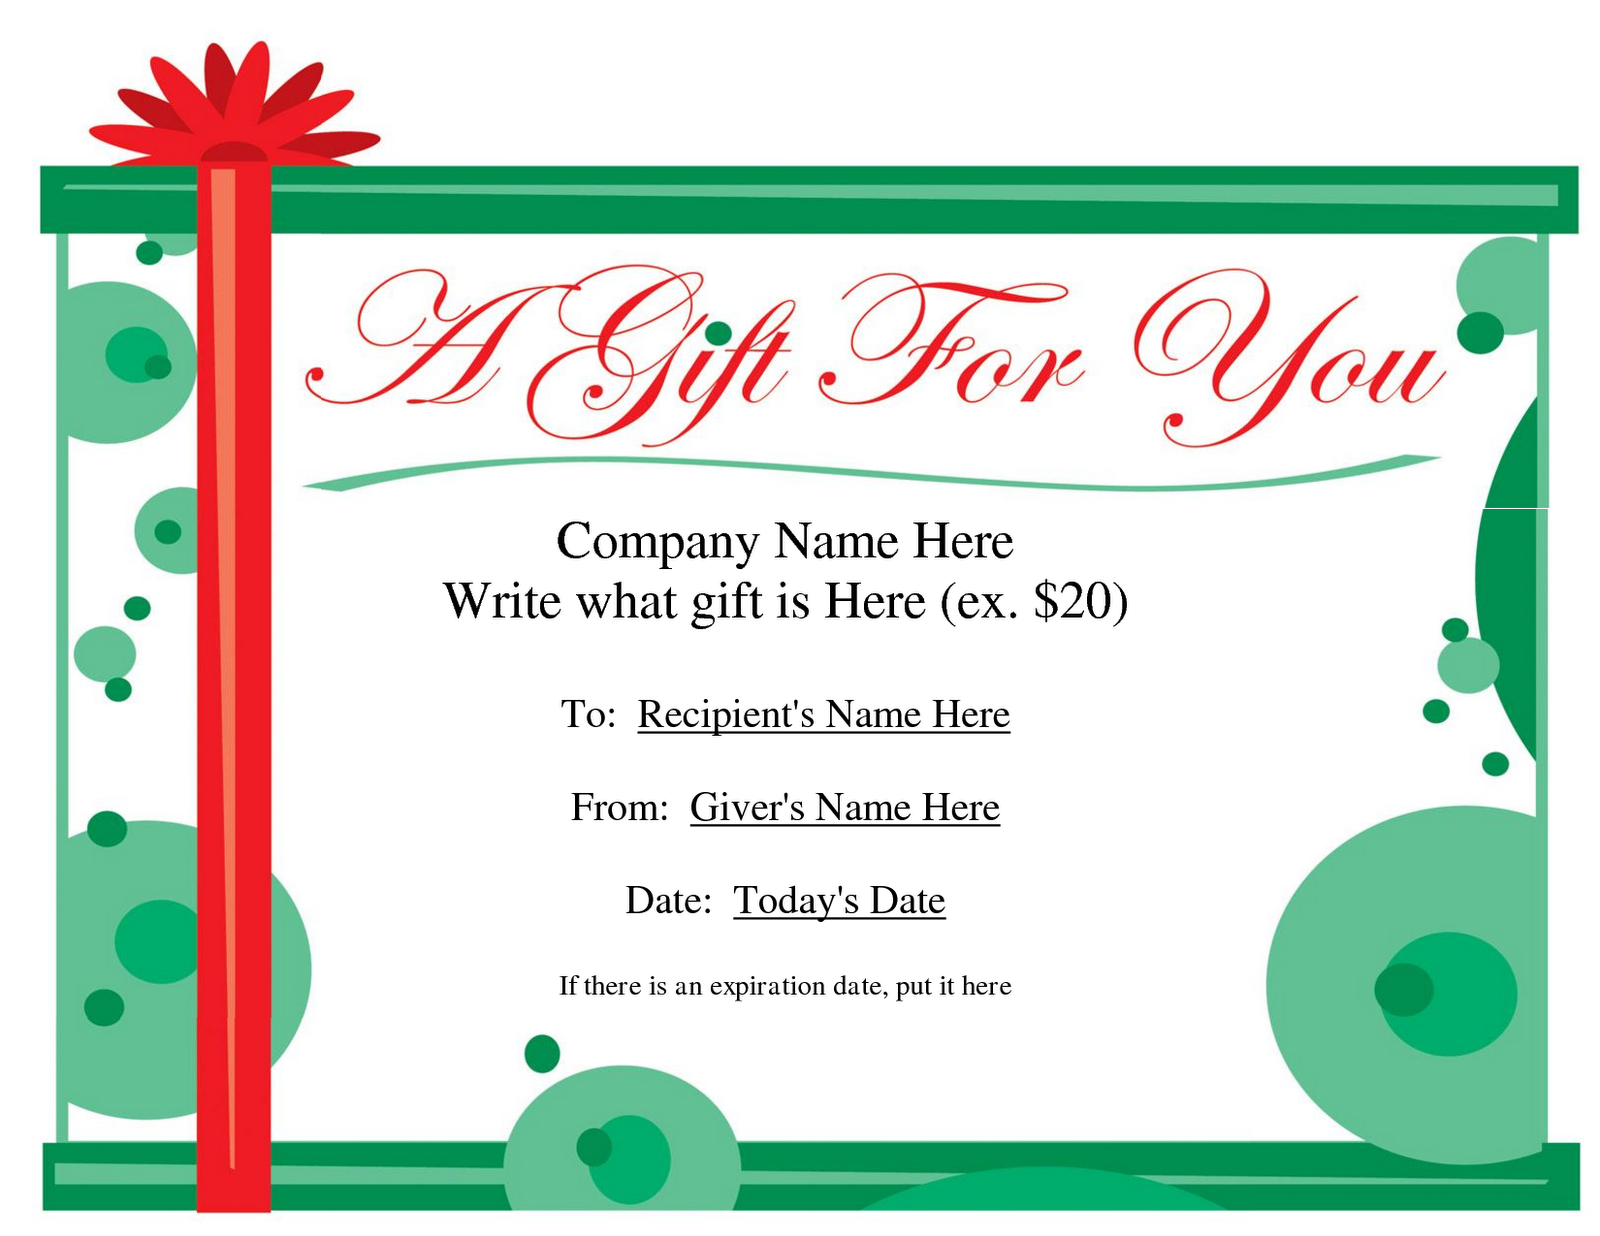 holiday certificate template getletter sample resume holiday certificate template award certificate template 2020siteorg christmas gift blank christmas gift certificate